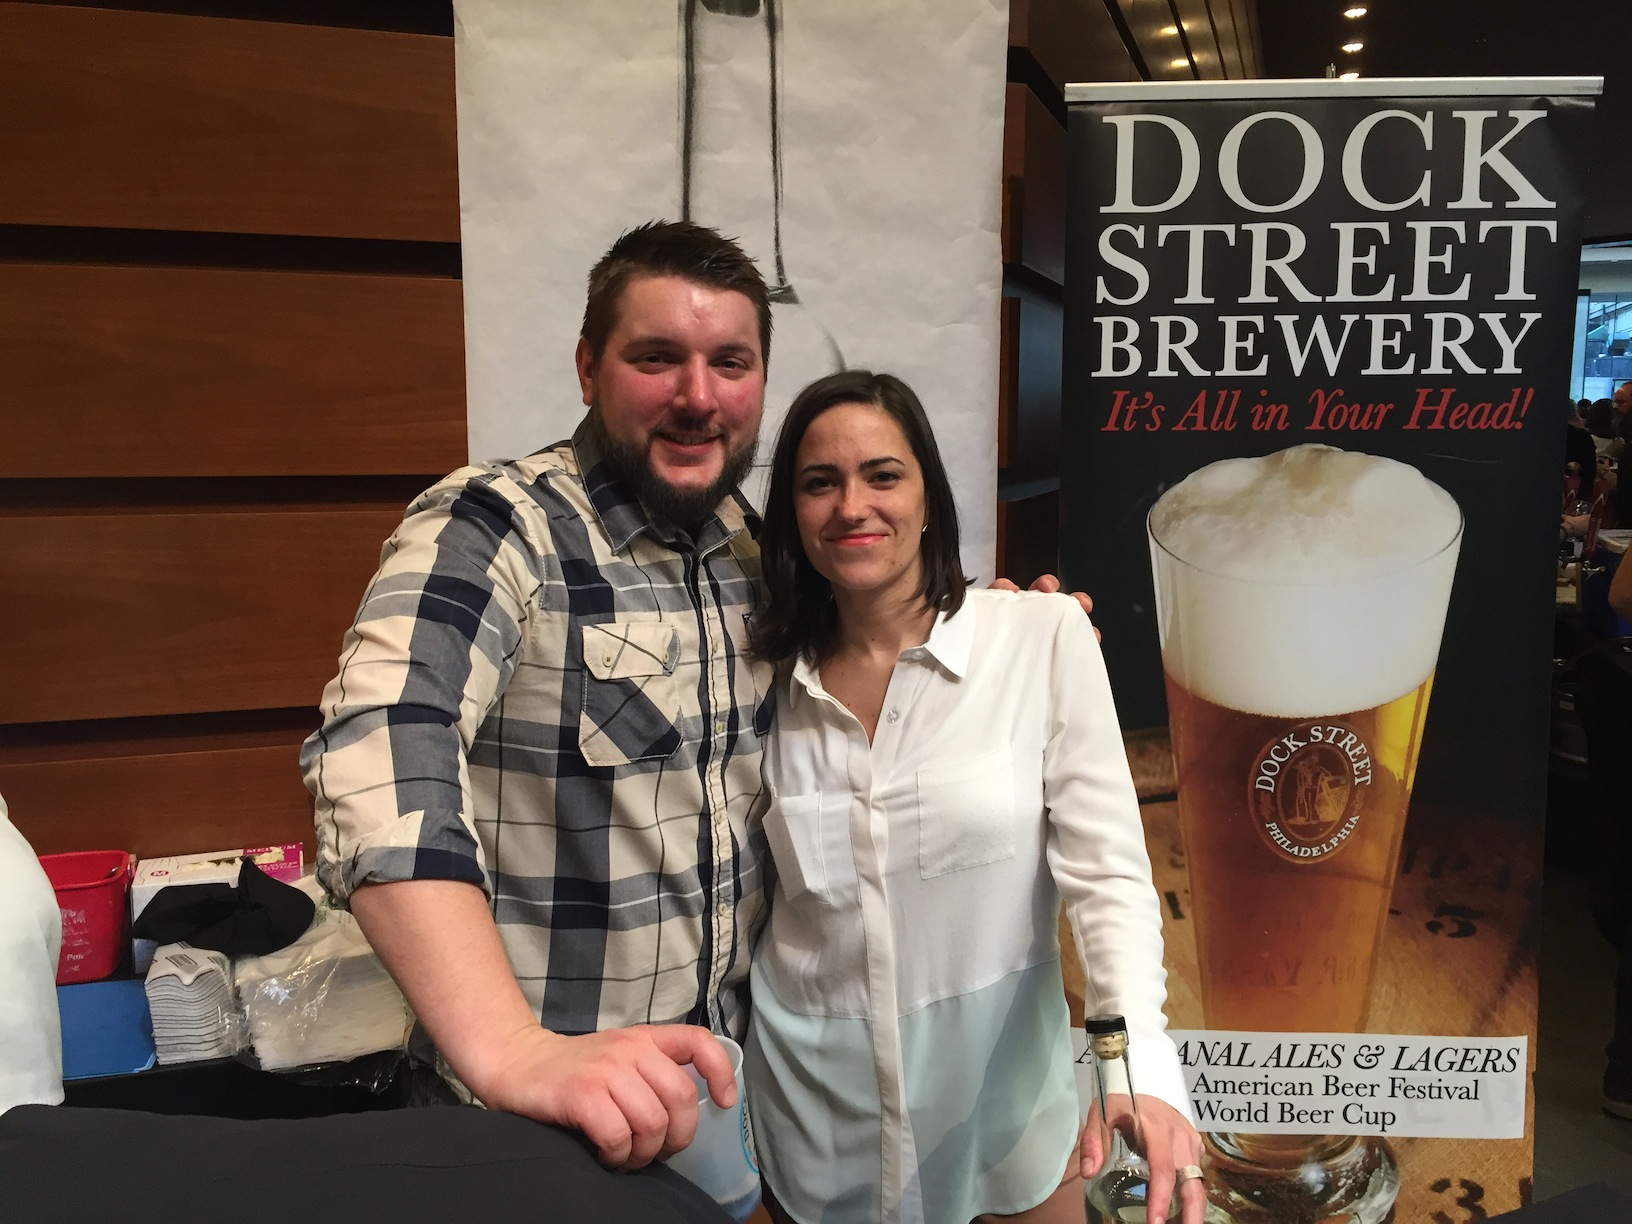 Dock Street's head brewer Vince & Marilyn